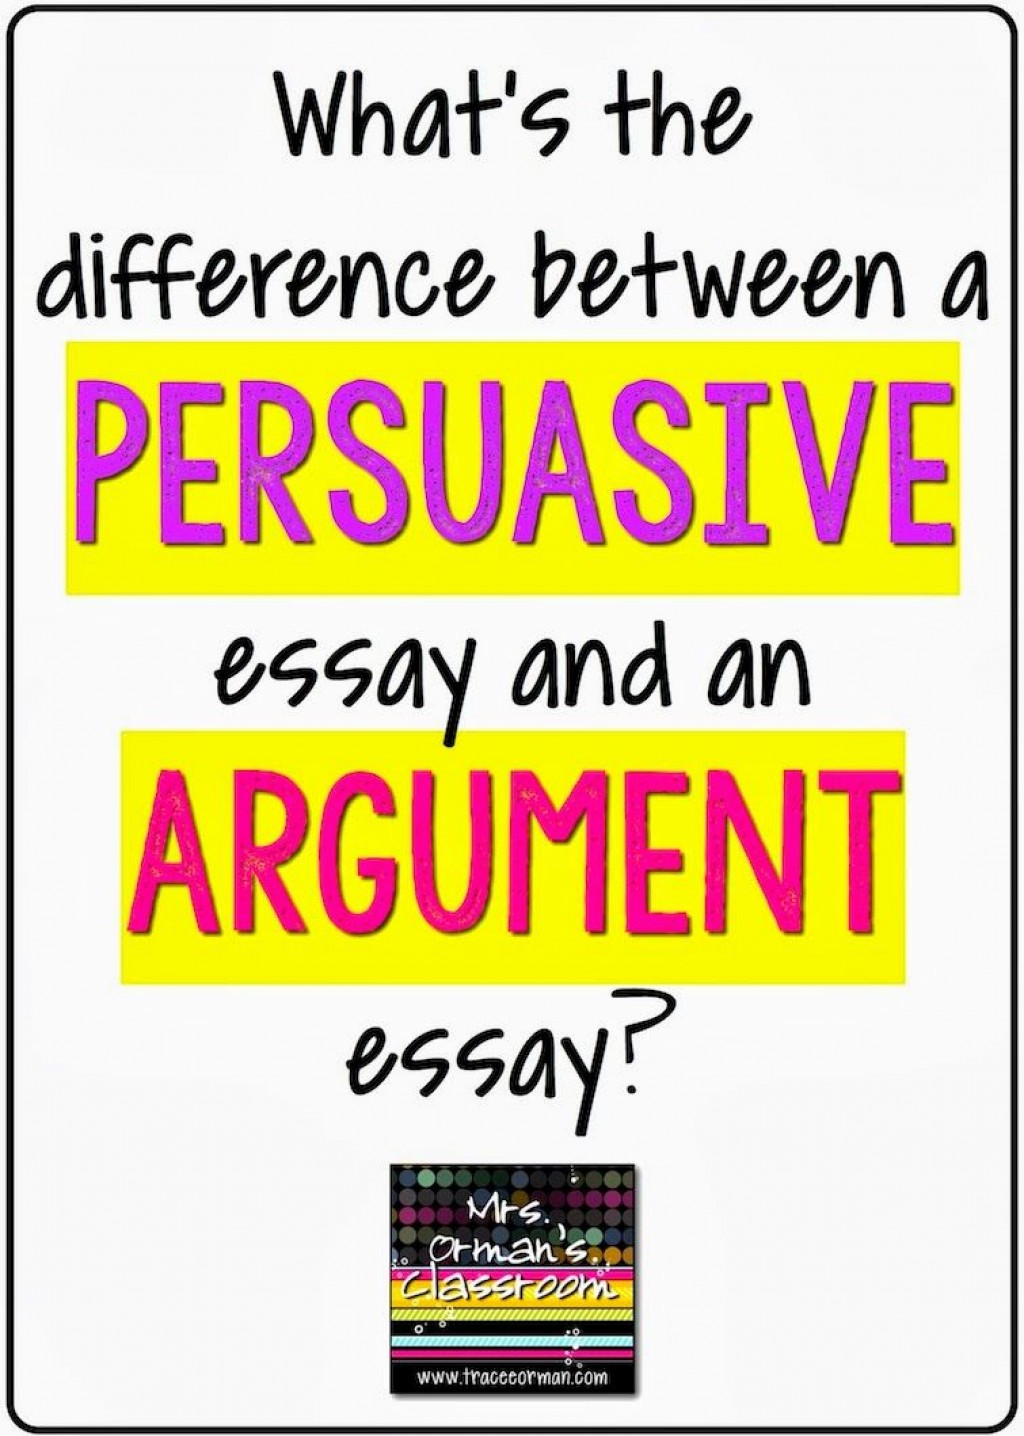 010 Persuasive Vs Argumentative Essay Example Awful Are And Essays The Same Differentiate Large